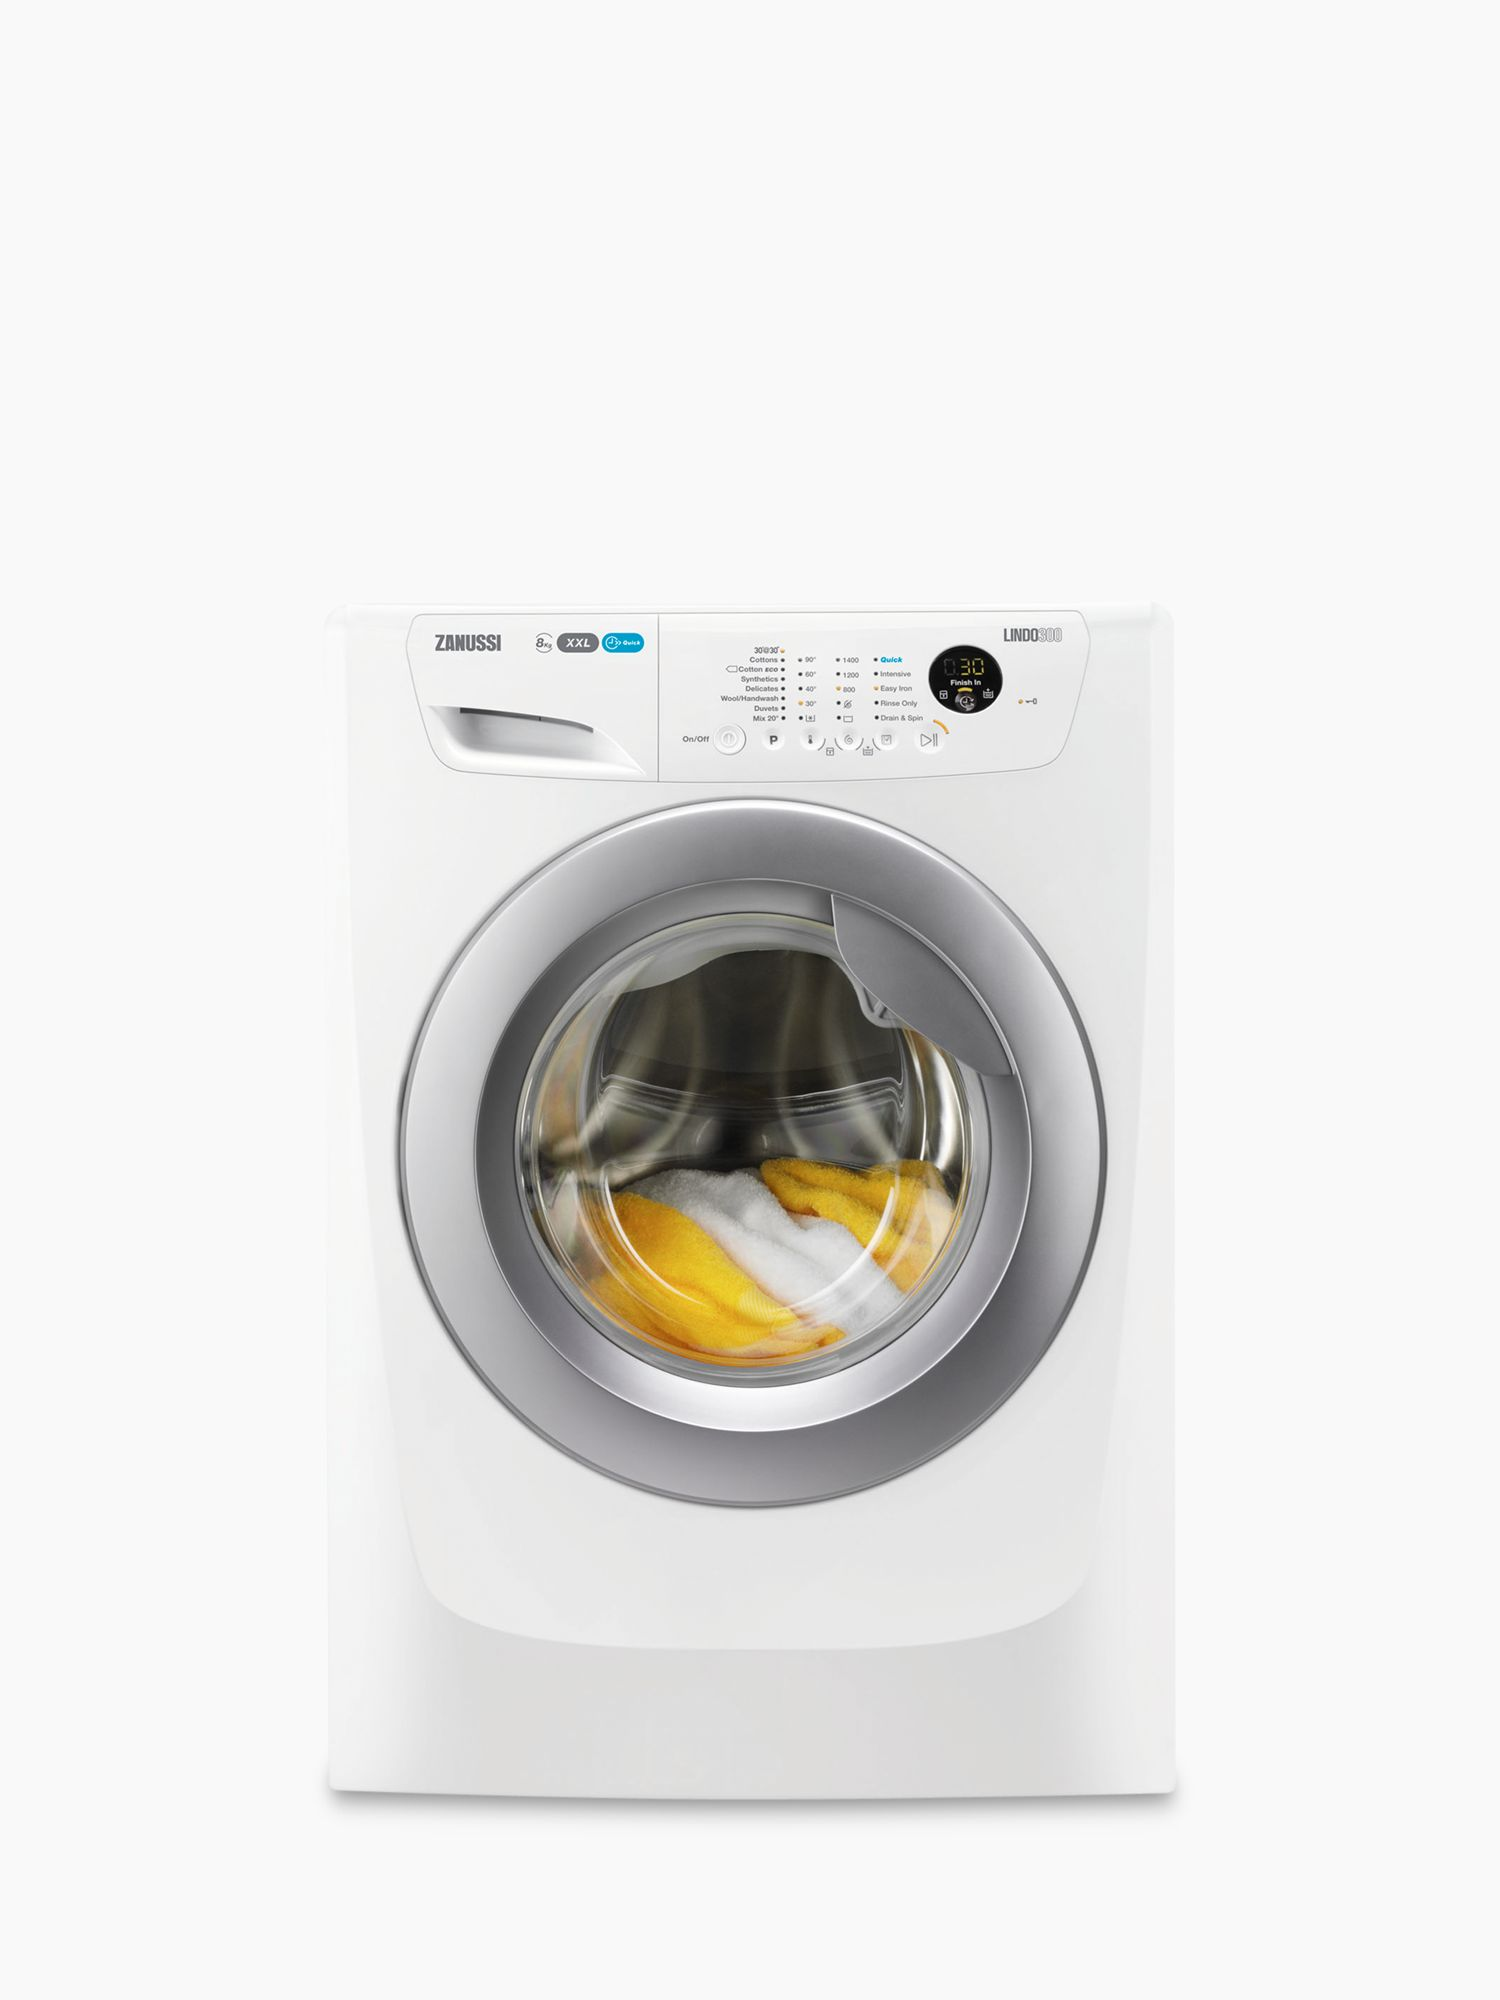 Zanussi Zanussi ZWF81463WR Freestanding Washing Machine, 8kg Load, A+++ Energy Rating, 1400rpm Spin, White